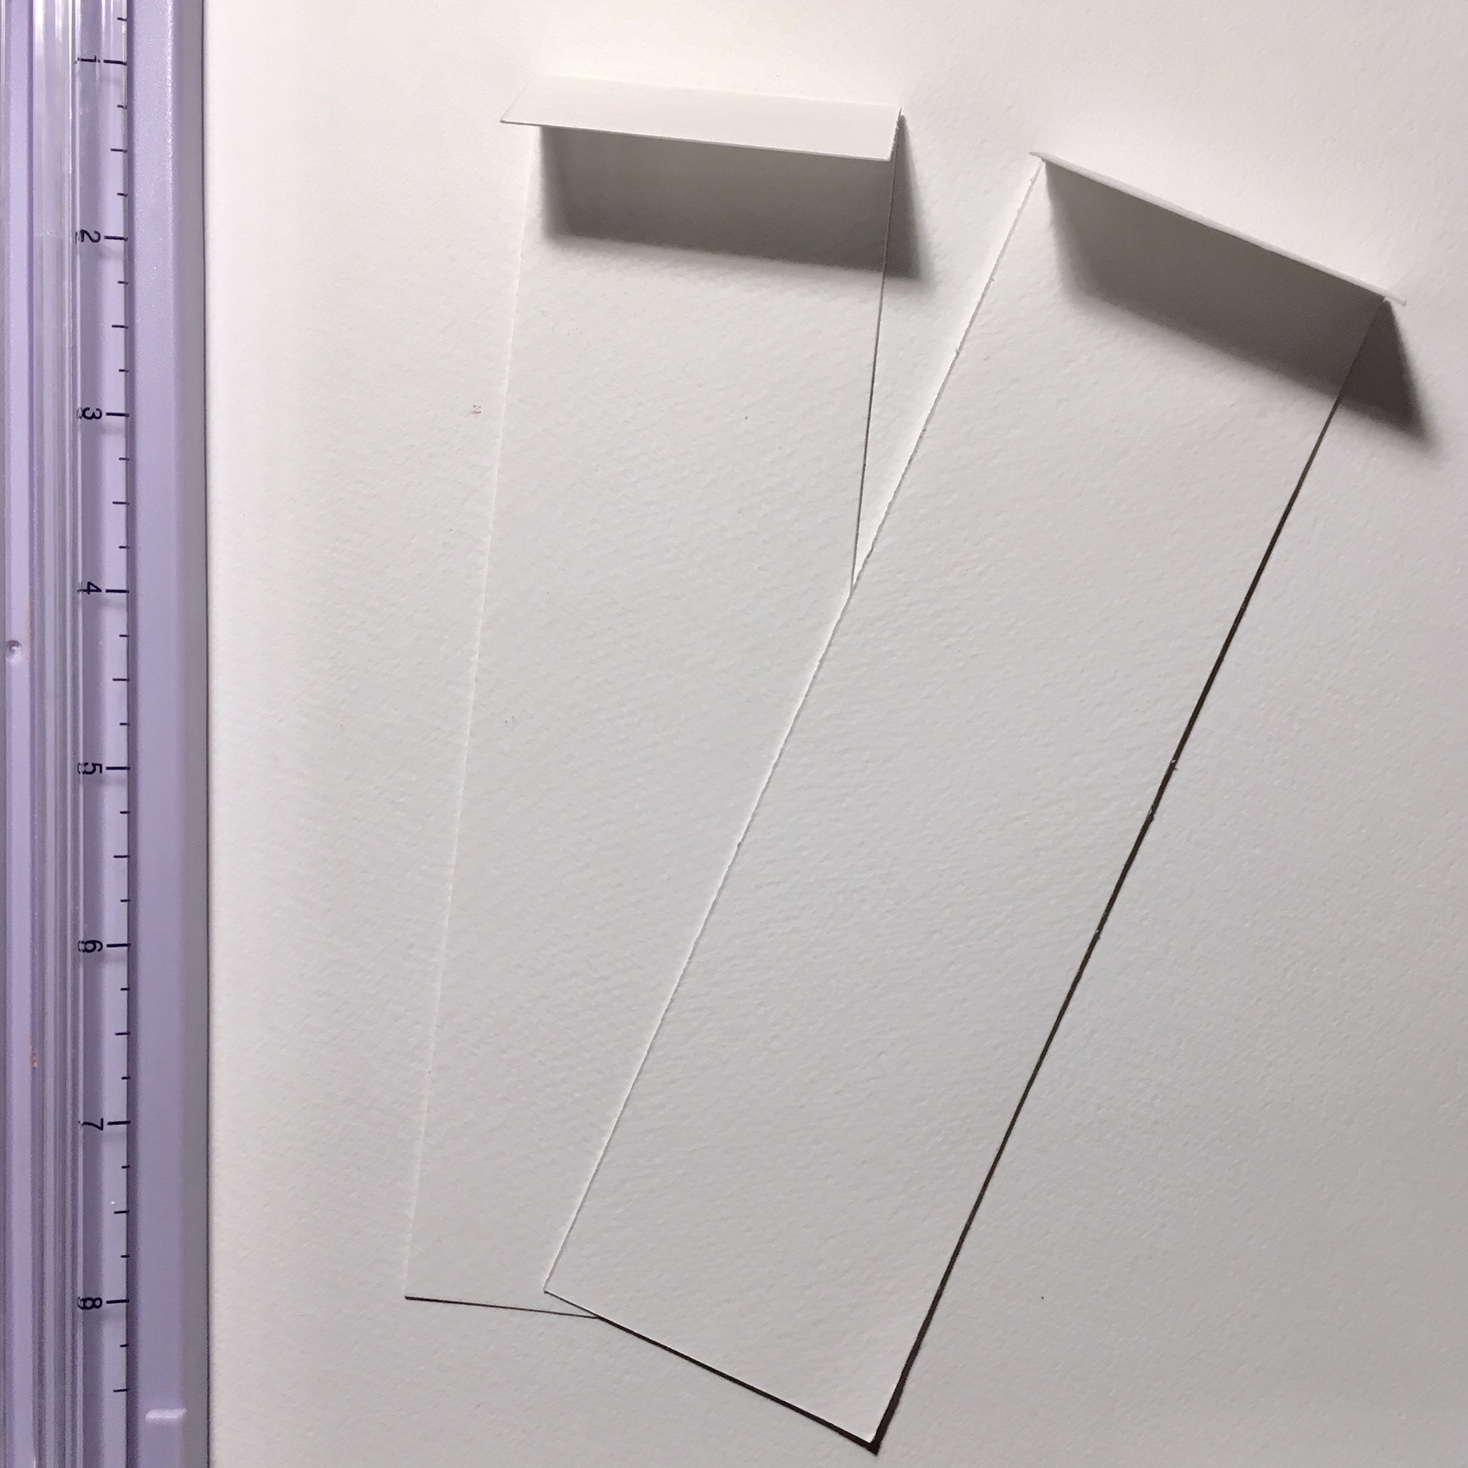 2 long rectangles from white watercolour paper